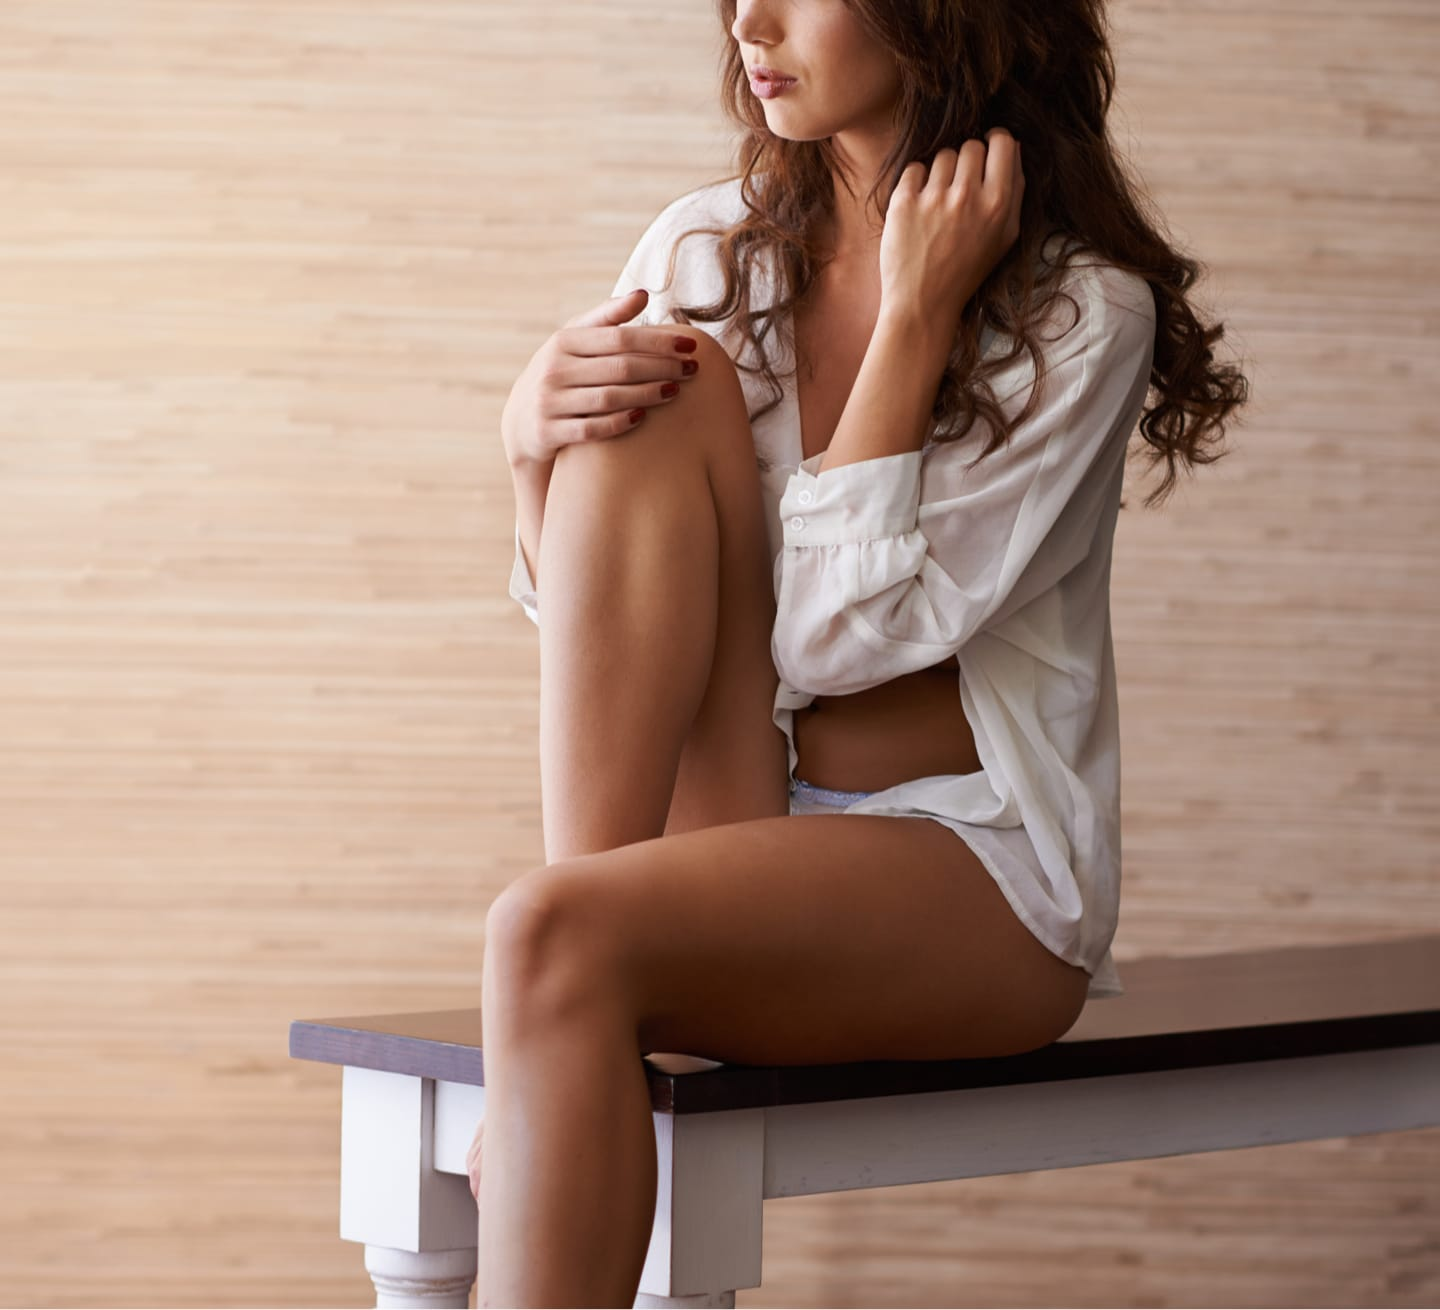 model on bench in a dress shirt